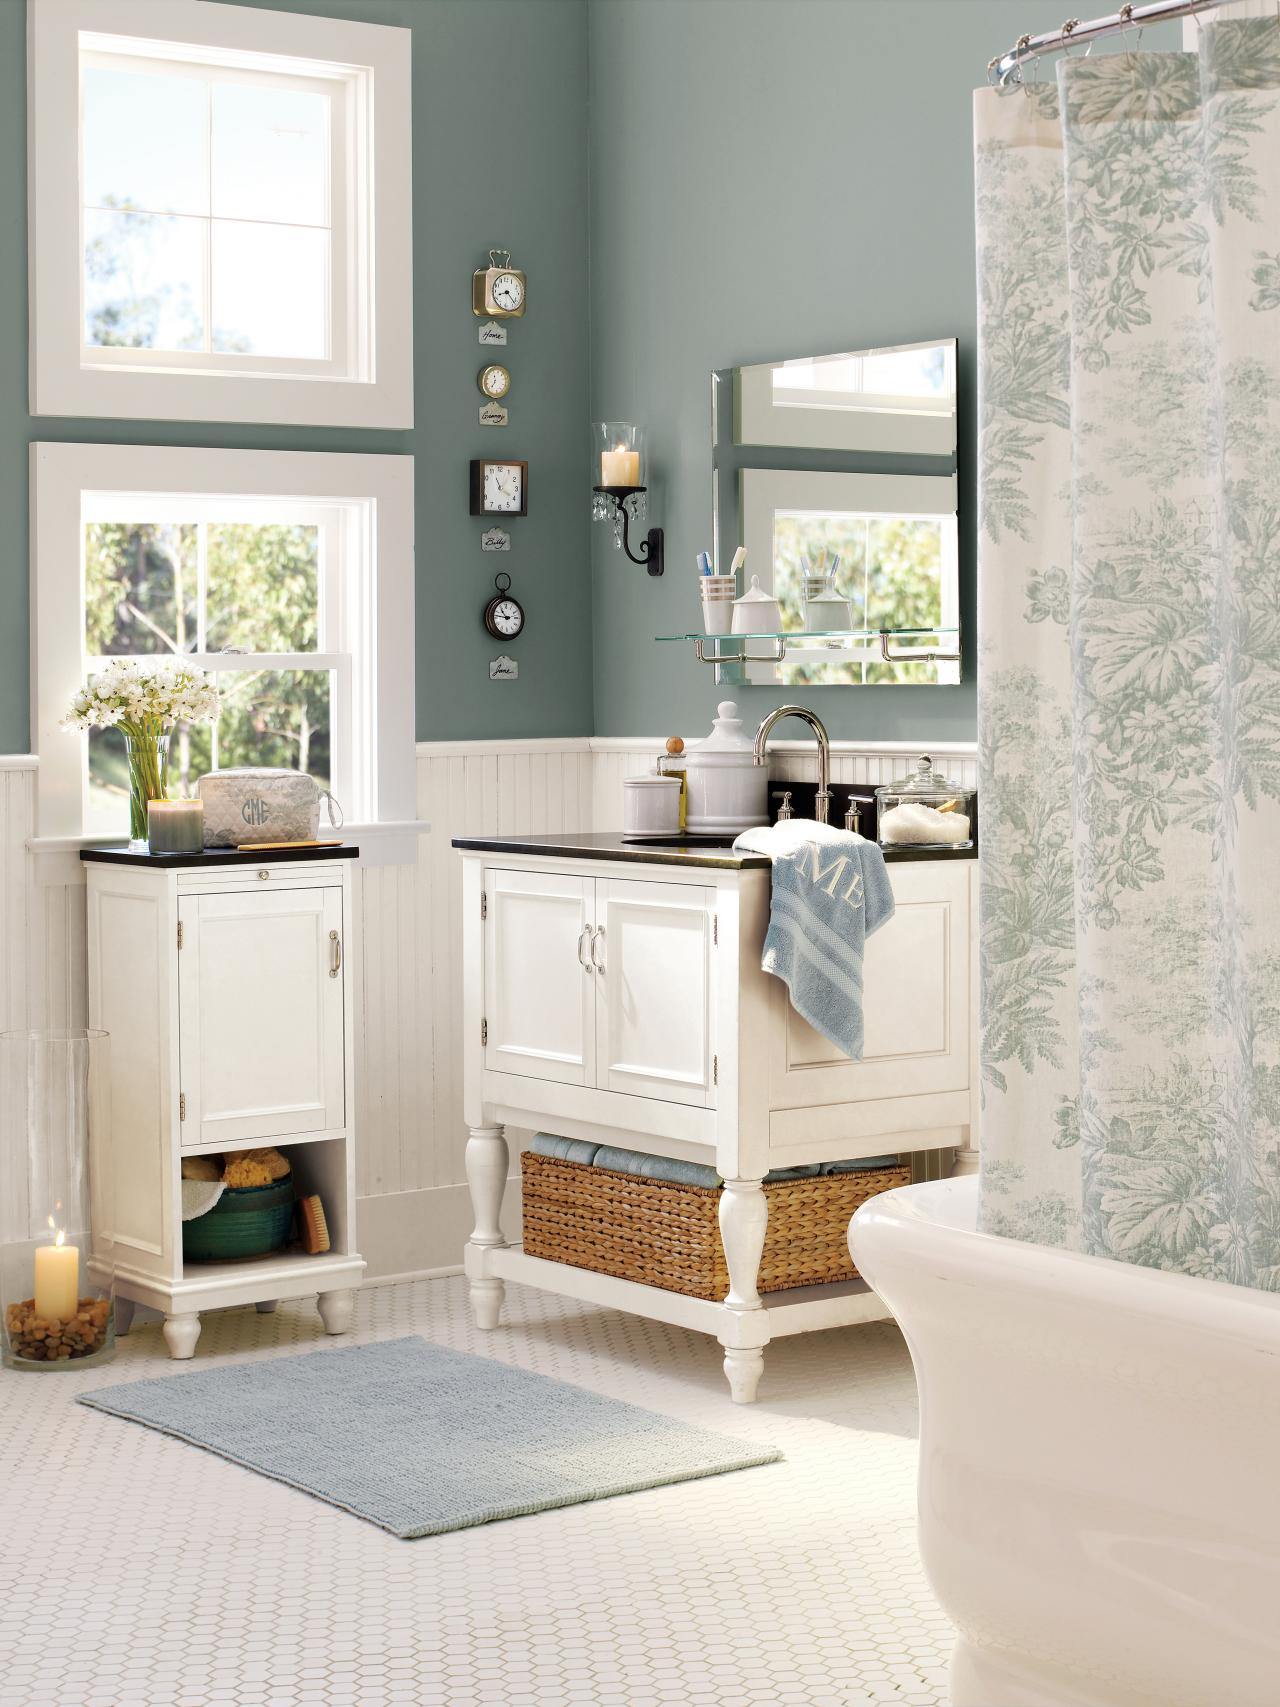 awesome pottery barn bathrooms designs | Photos | HGTV